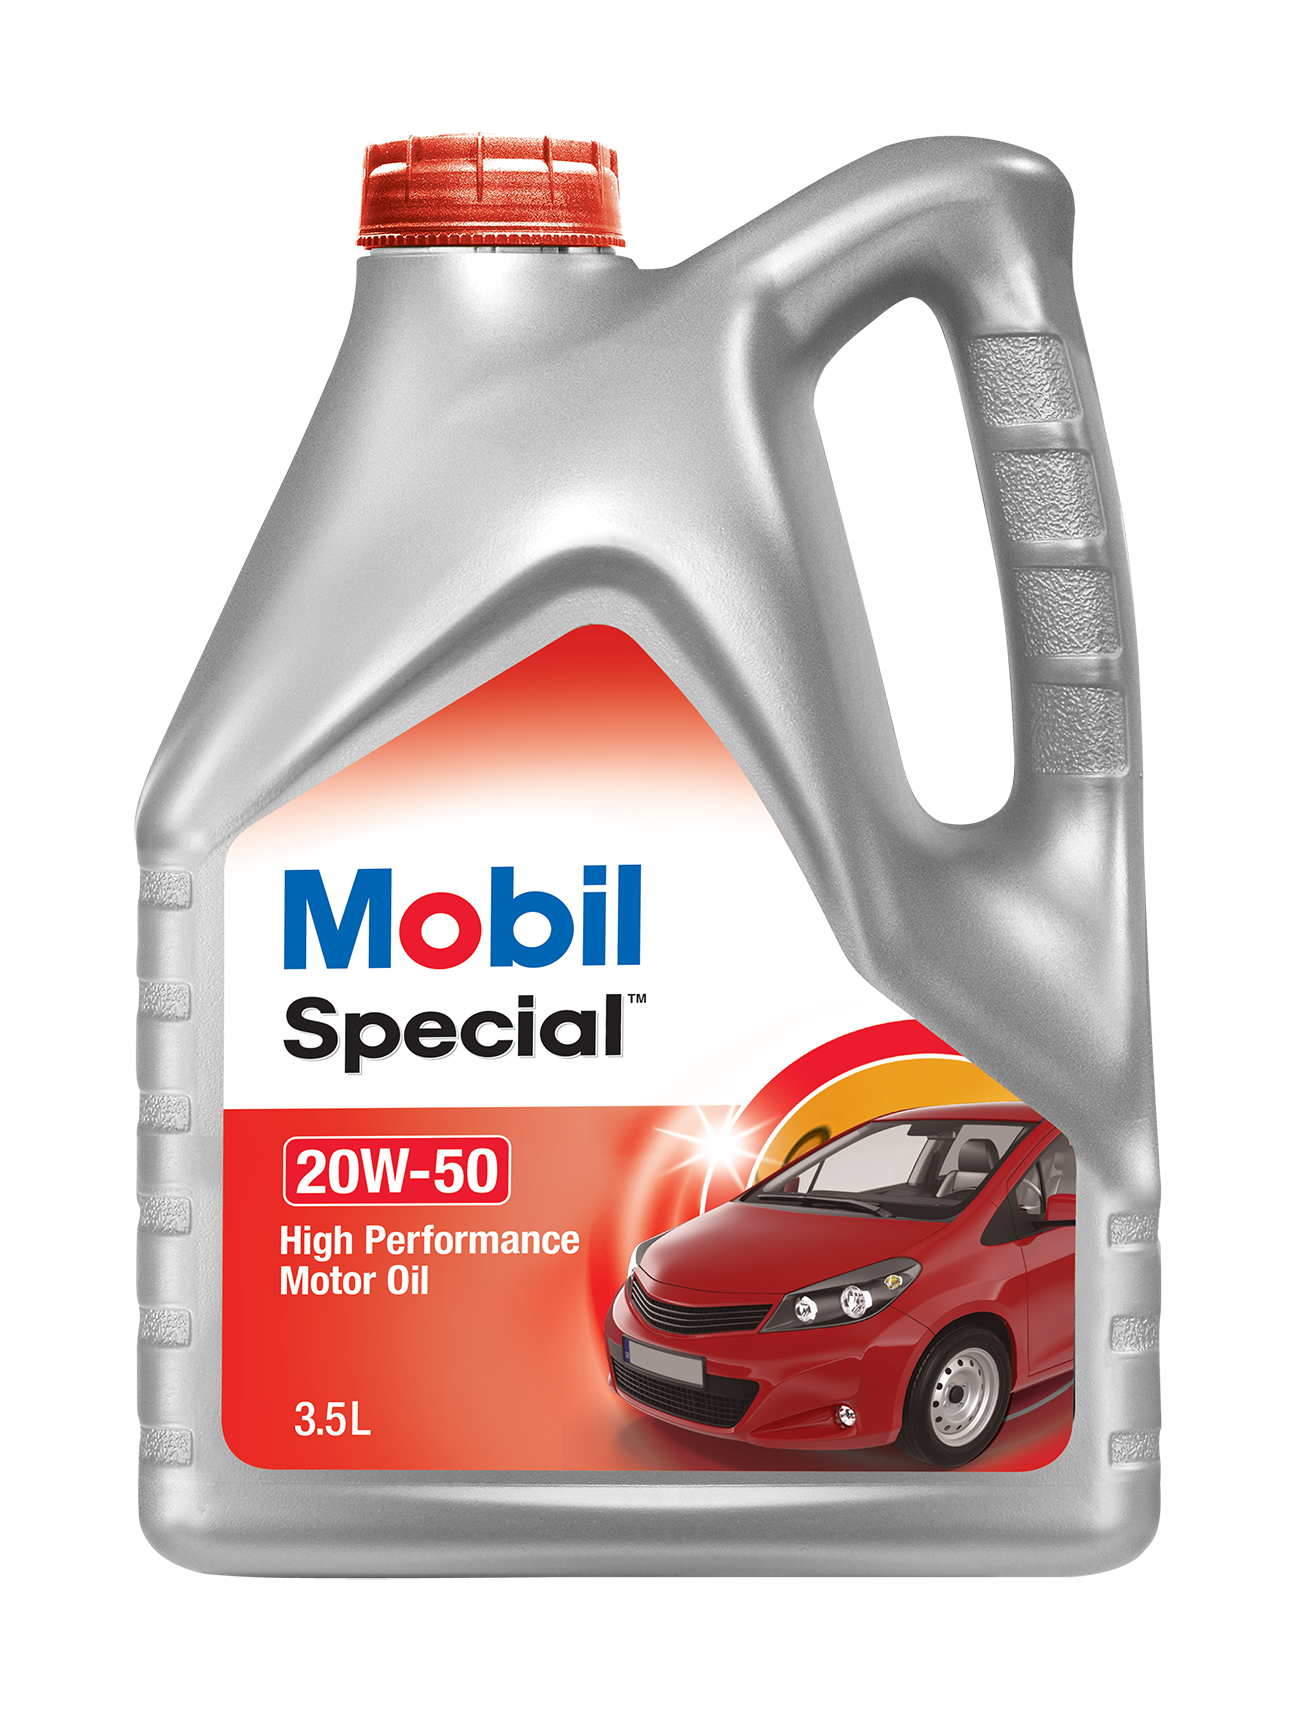 MOBIL SPECIAL